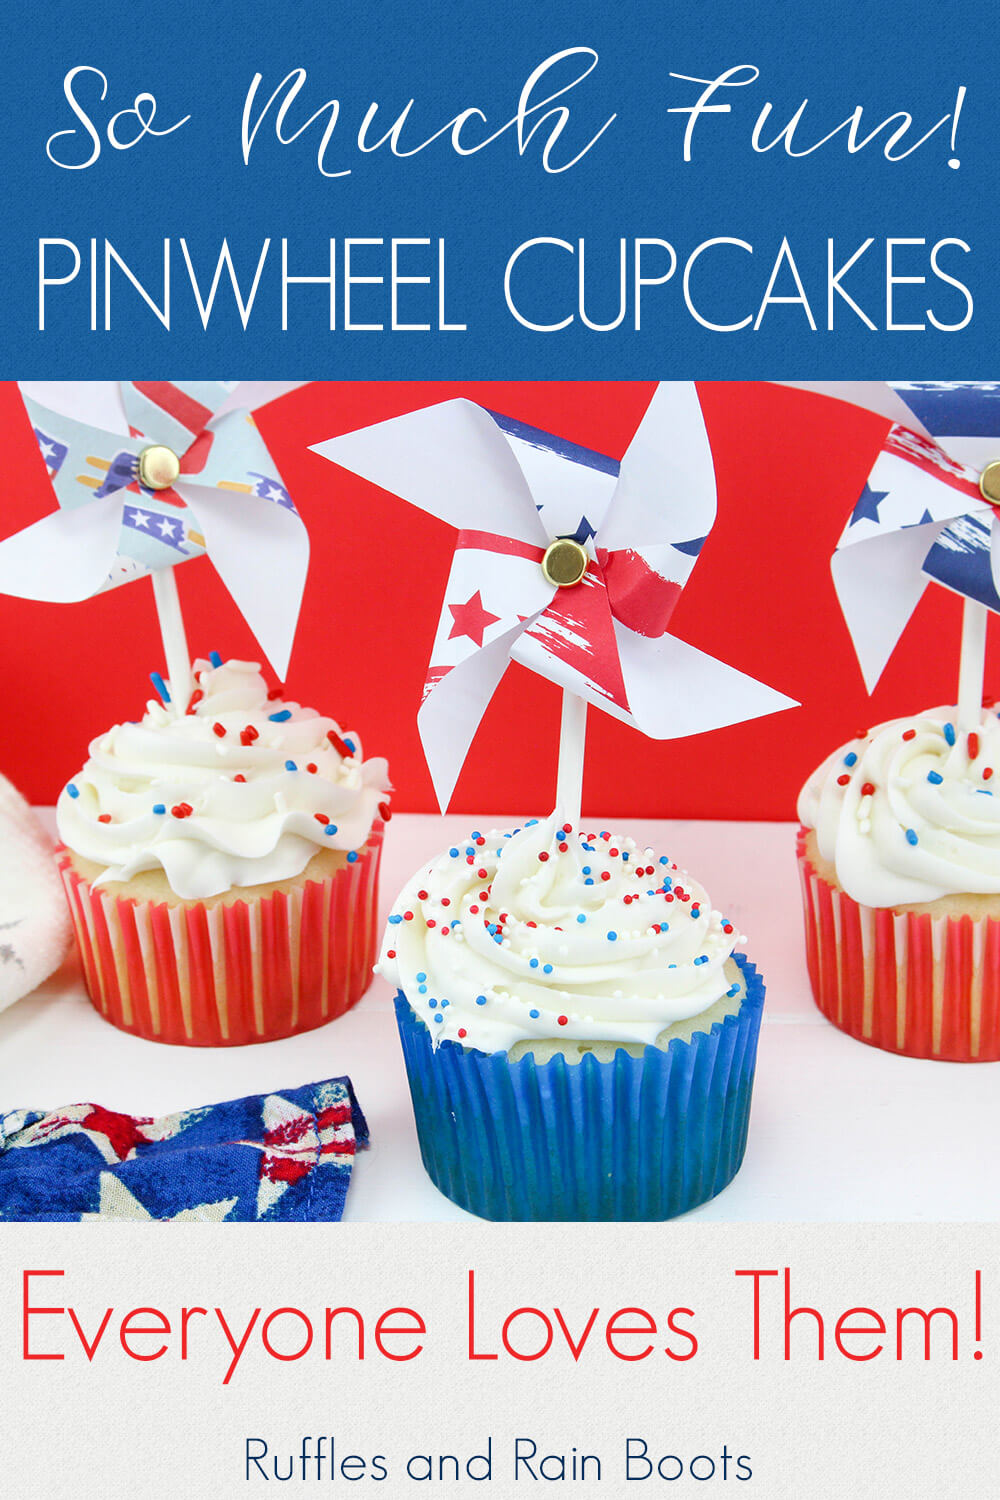 three cupcakes with white icing on top and red and white cupcake liners with pinwheel toys on top on a white table with a flag linen and a red background with text which reads so much fun! pinwheel cupcakes